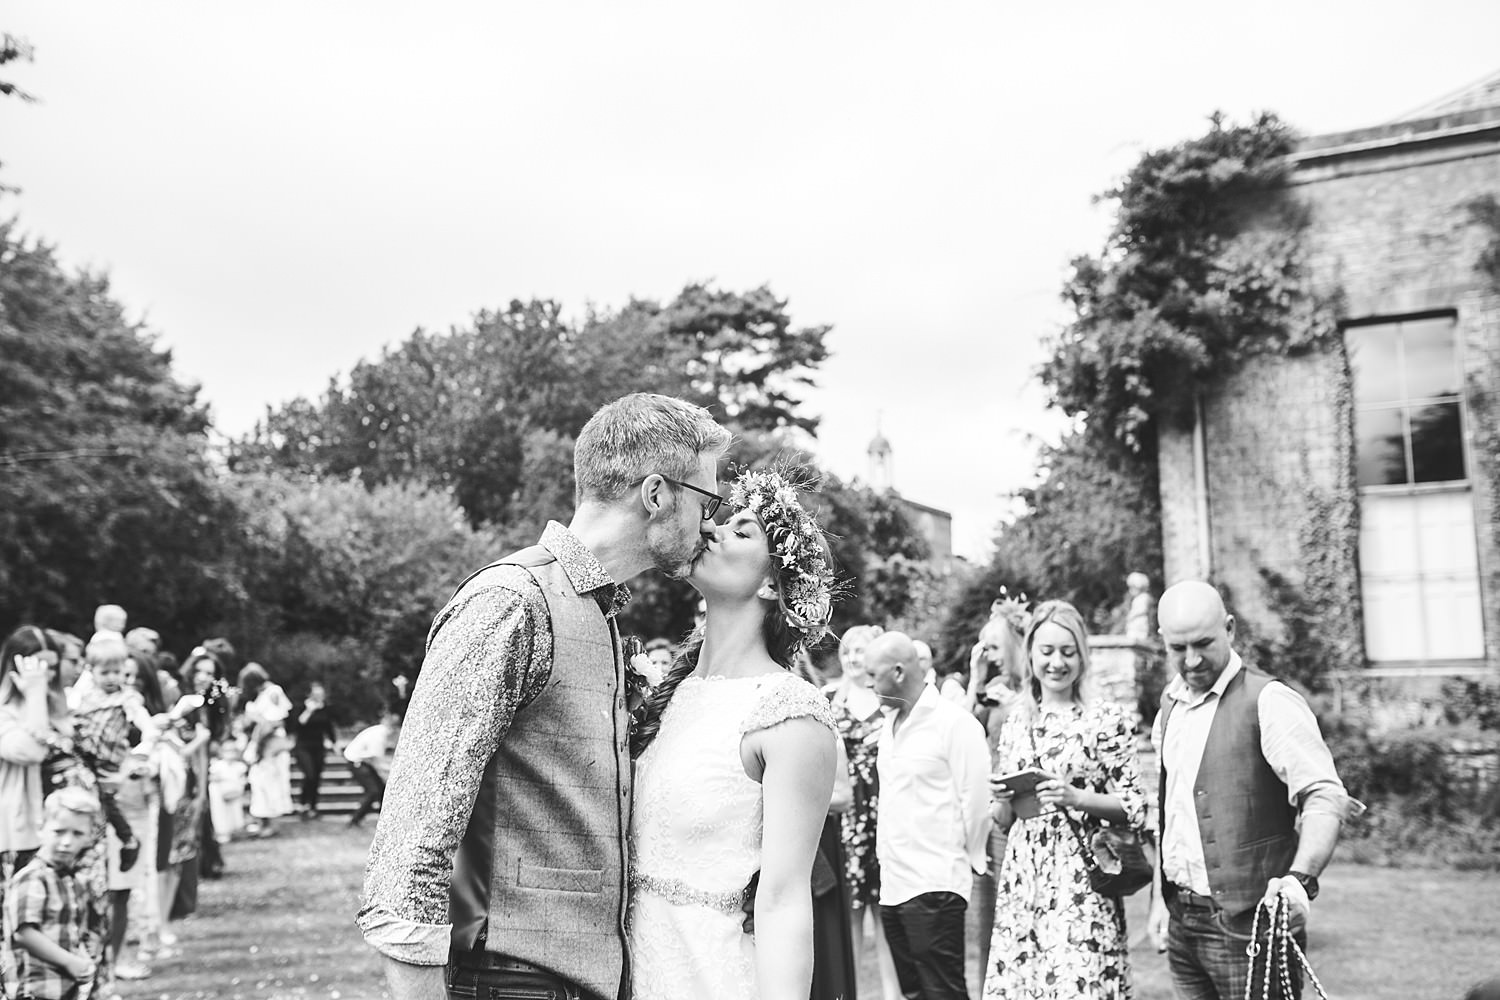 Cornwall wedding photographer Devon South West UK wedding photography natural